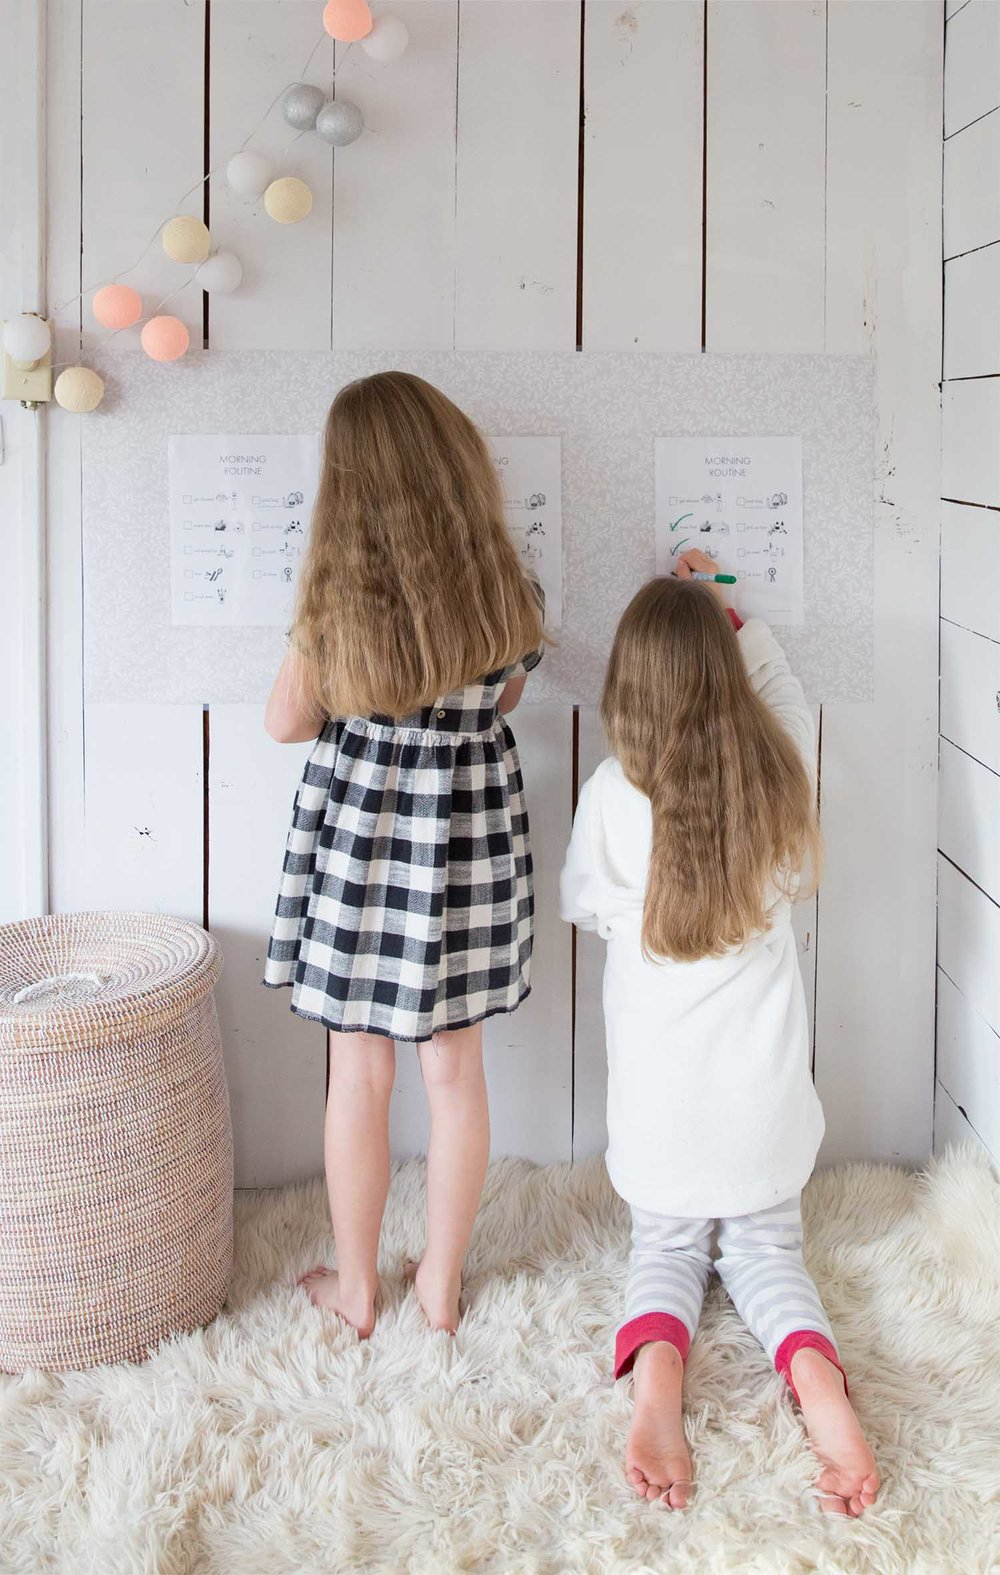 girls completing morning routine chart